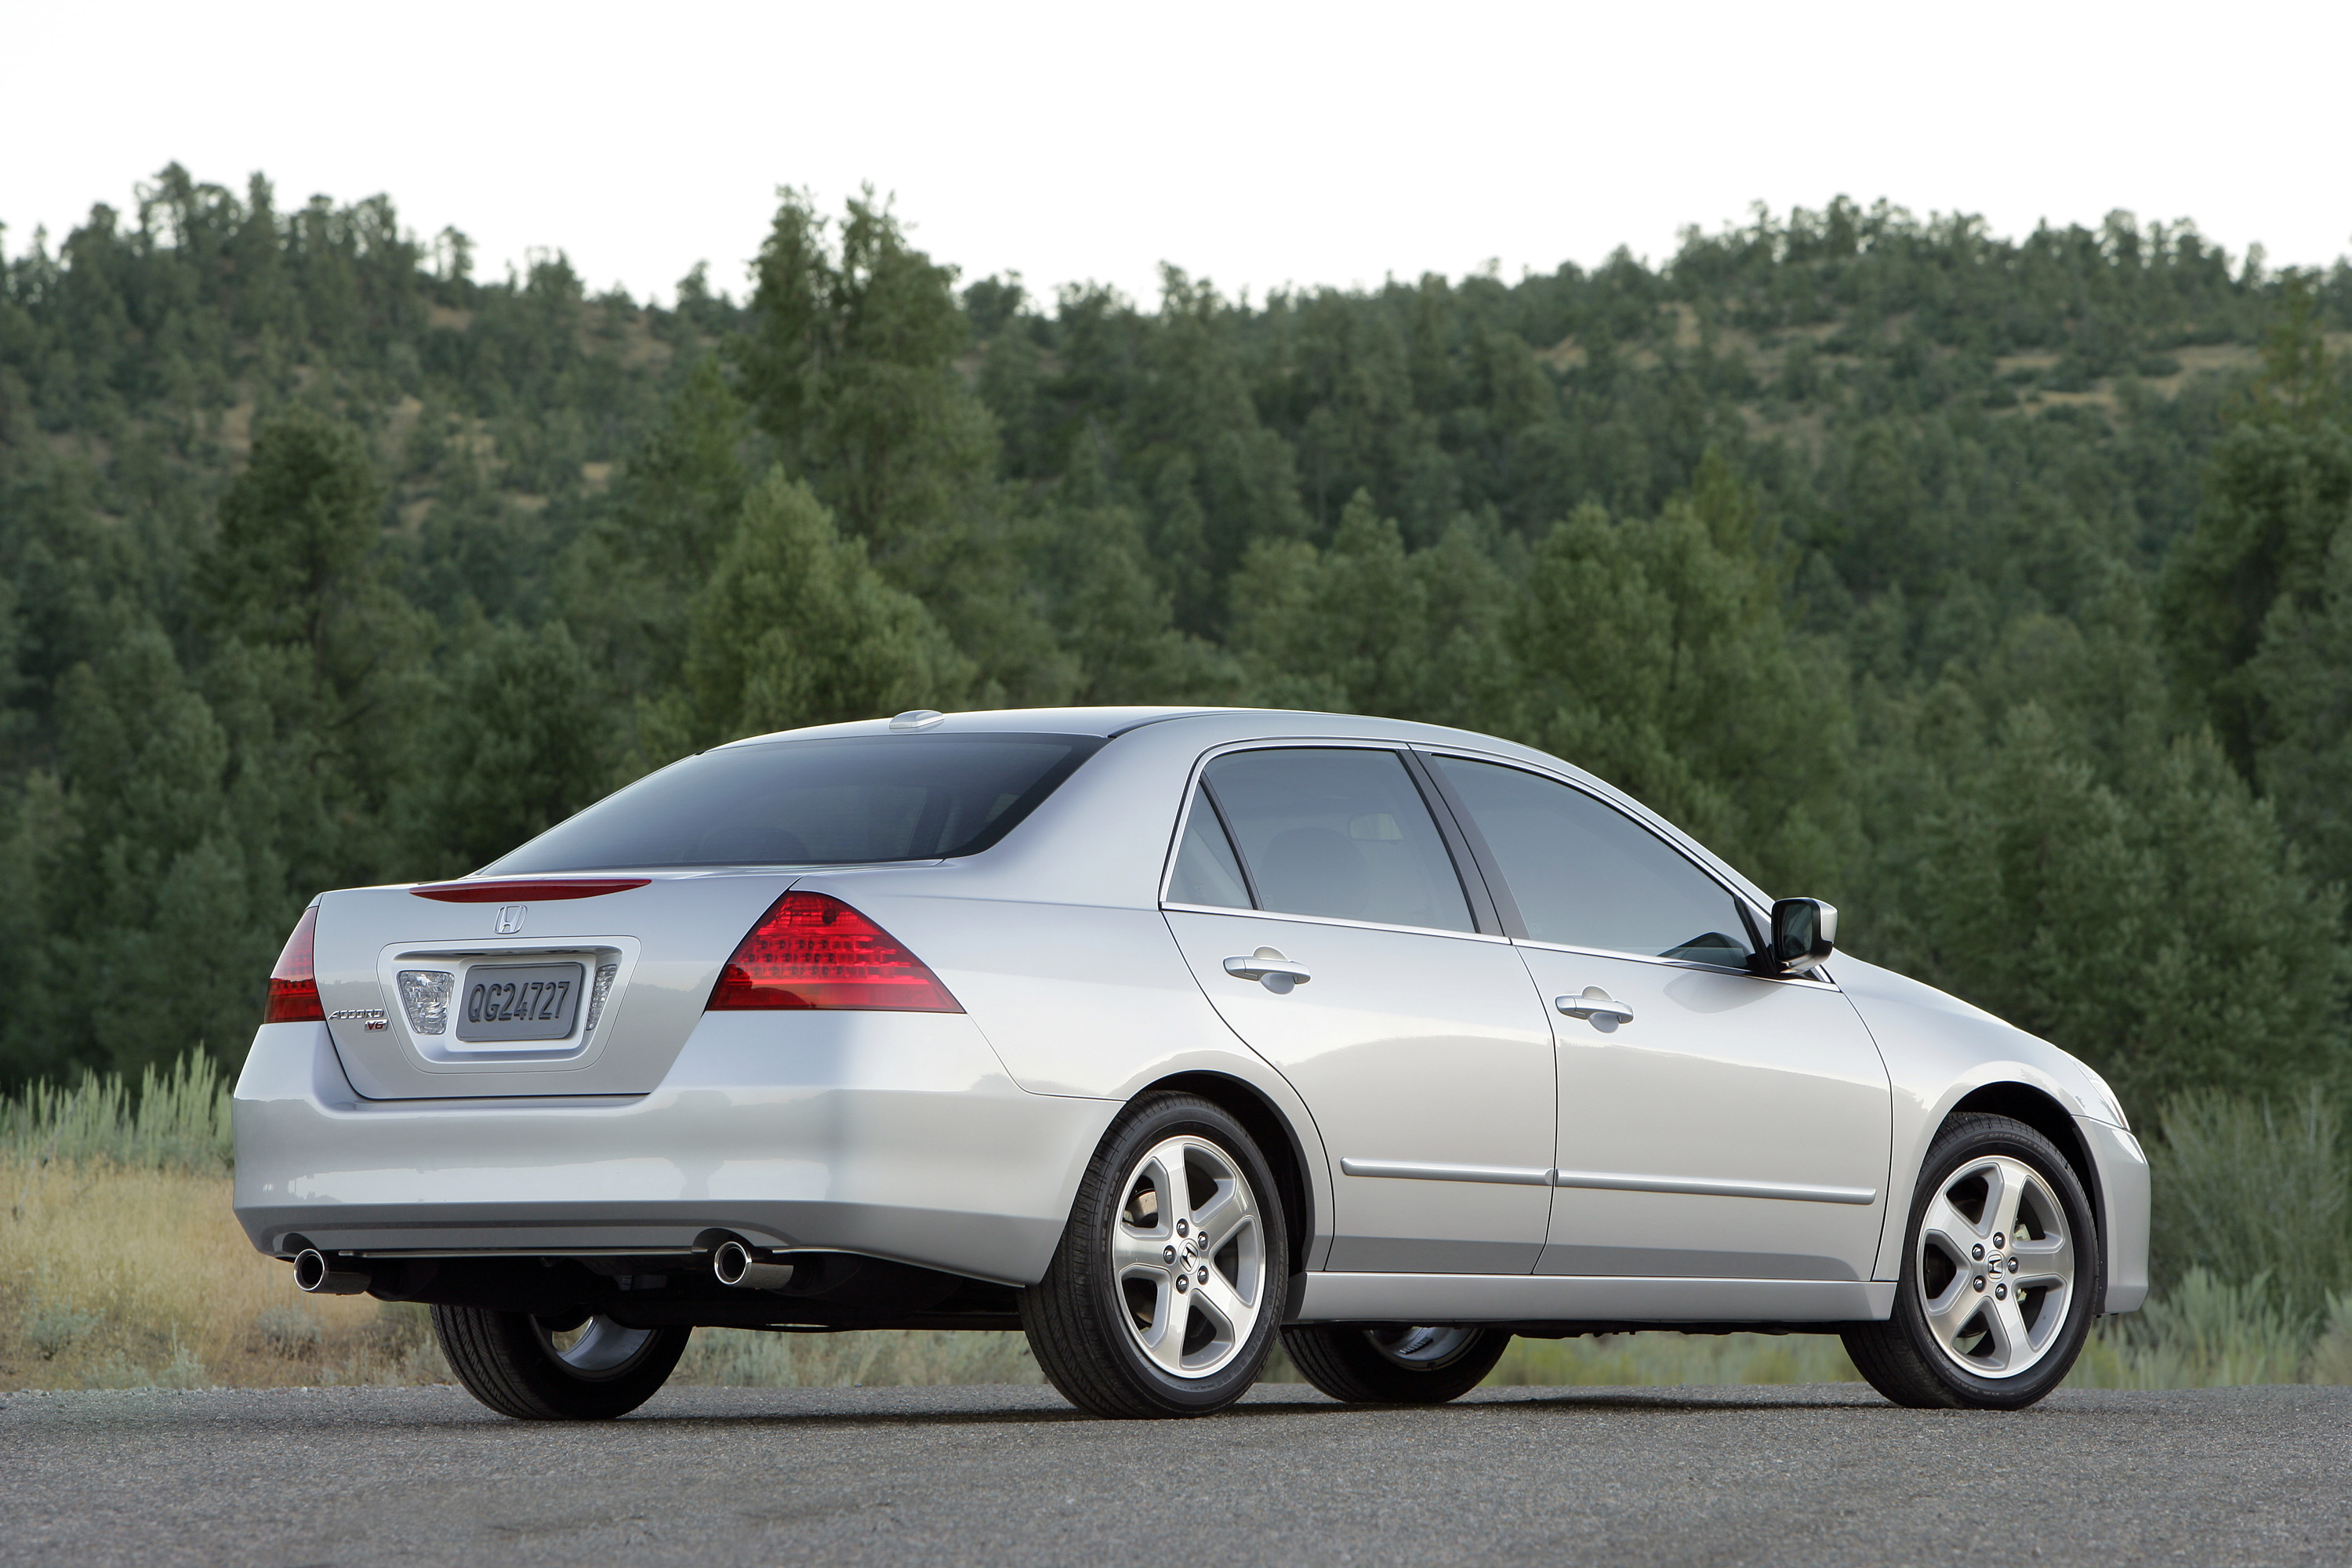 Awesome 2006 Honda Accord | Top Speed. »